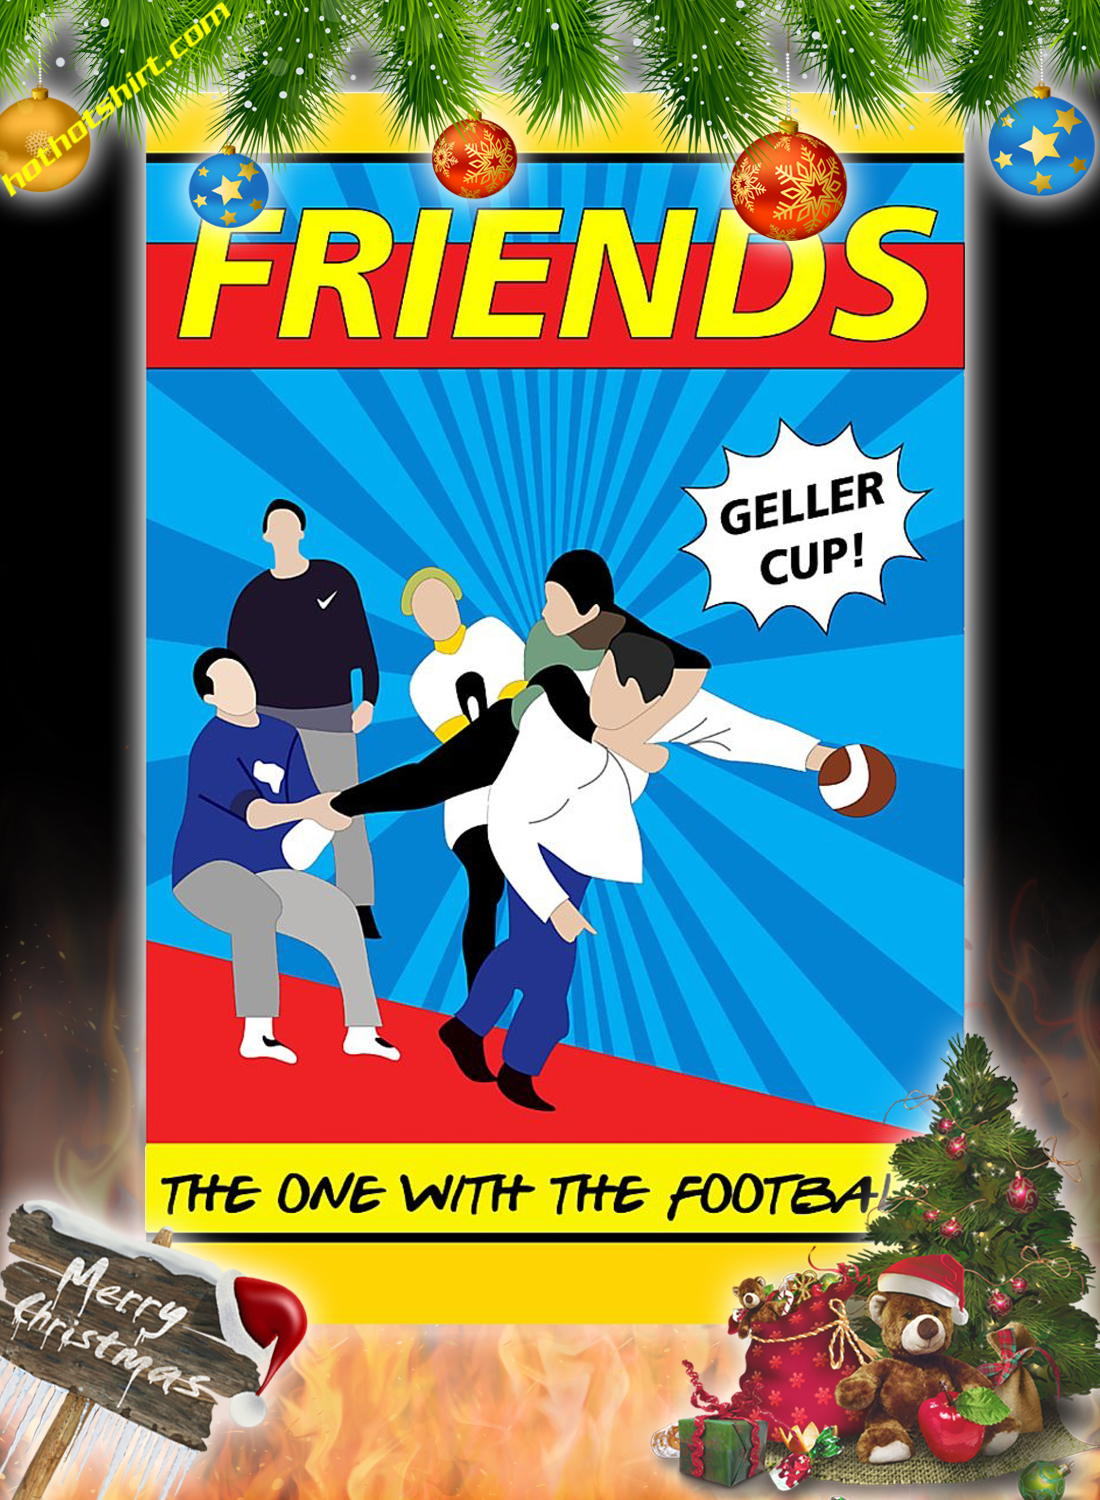 Friends the one with the football poster 1